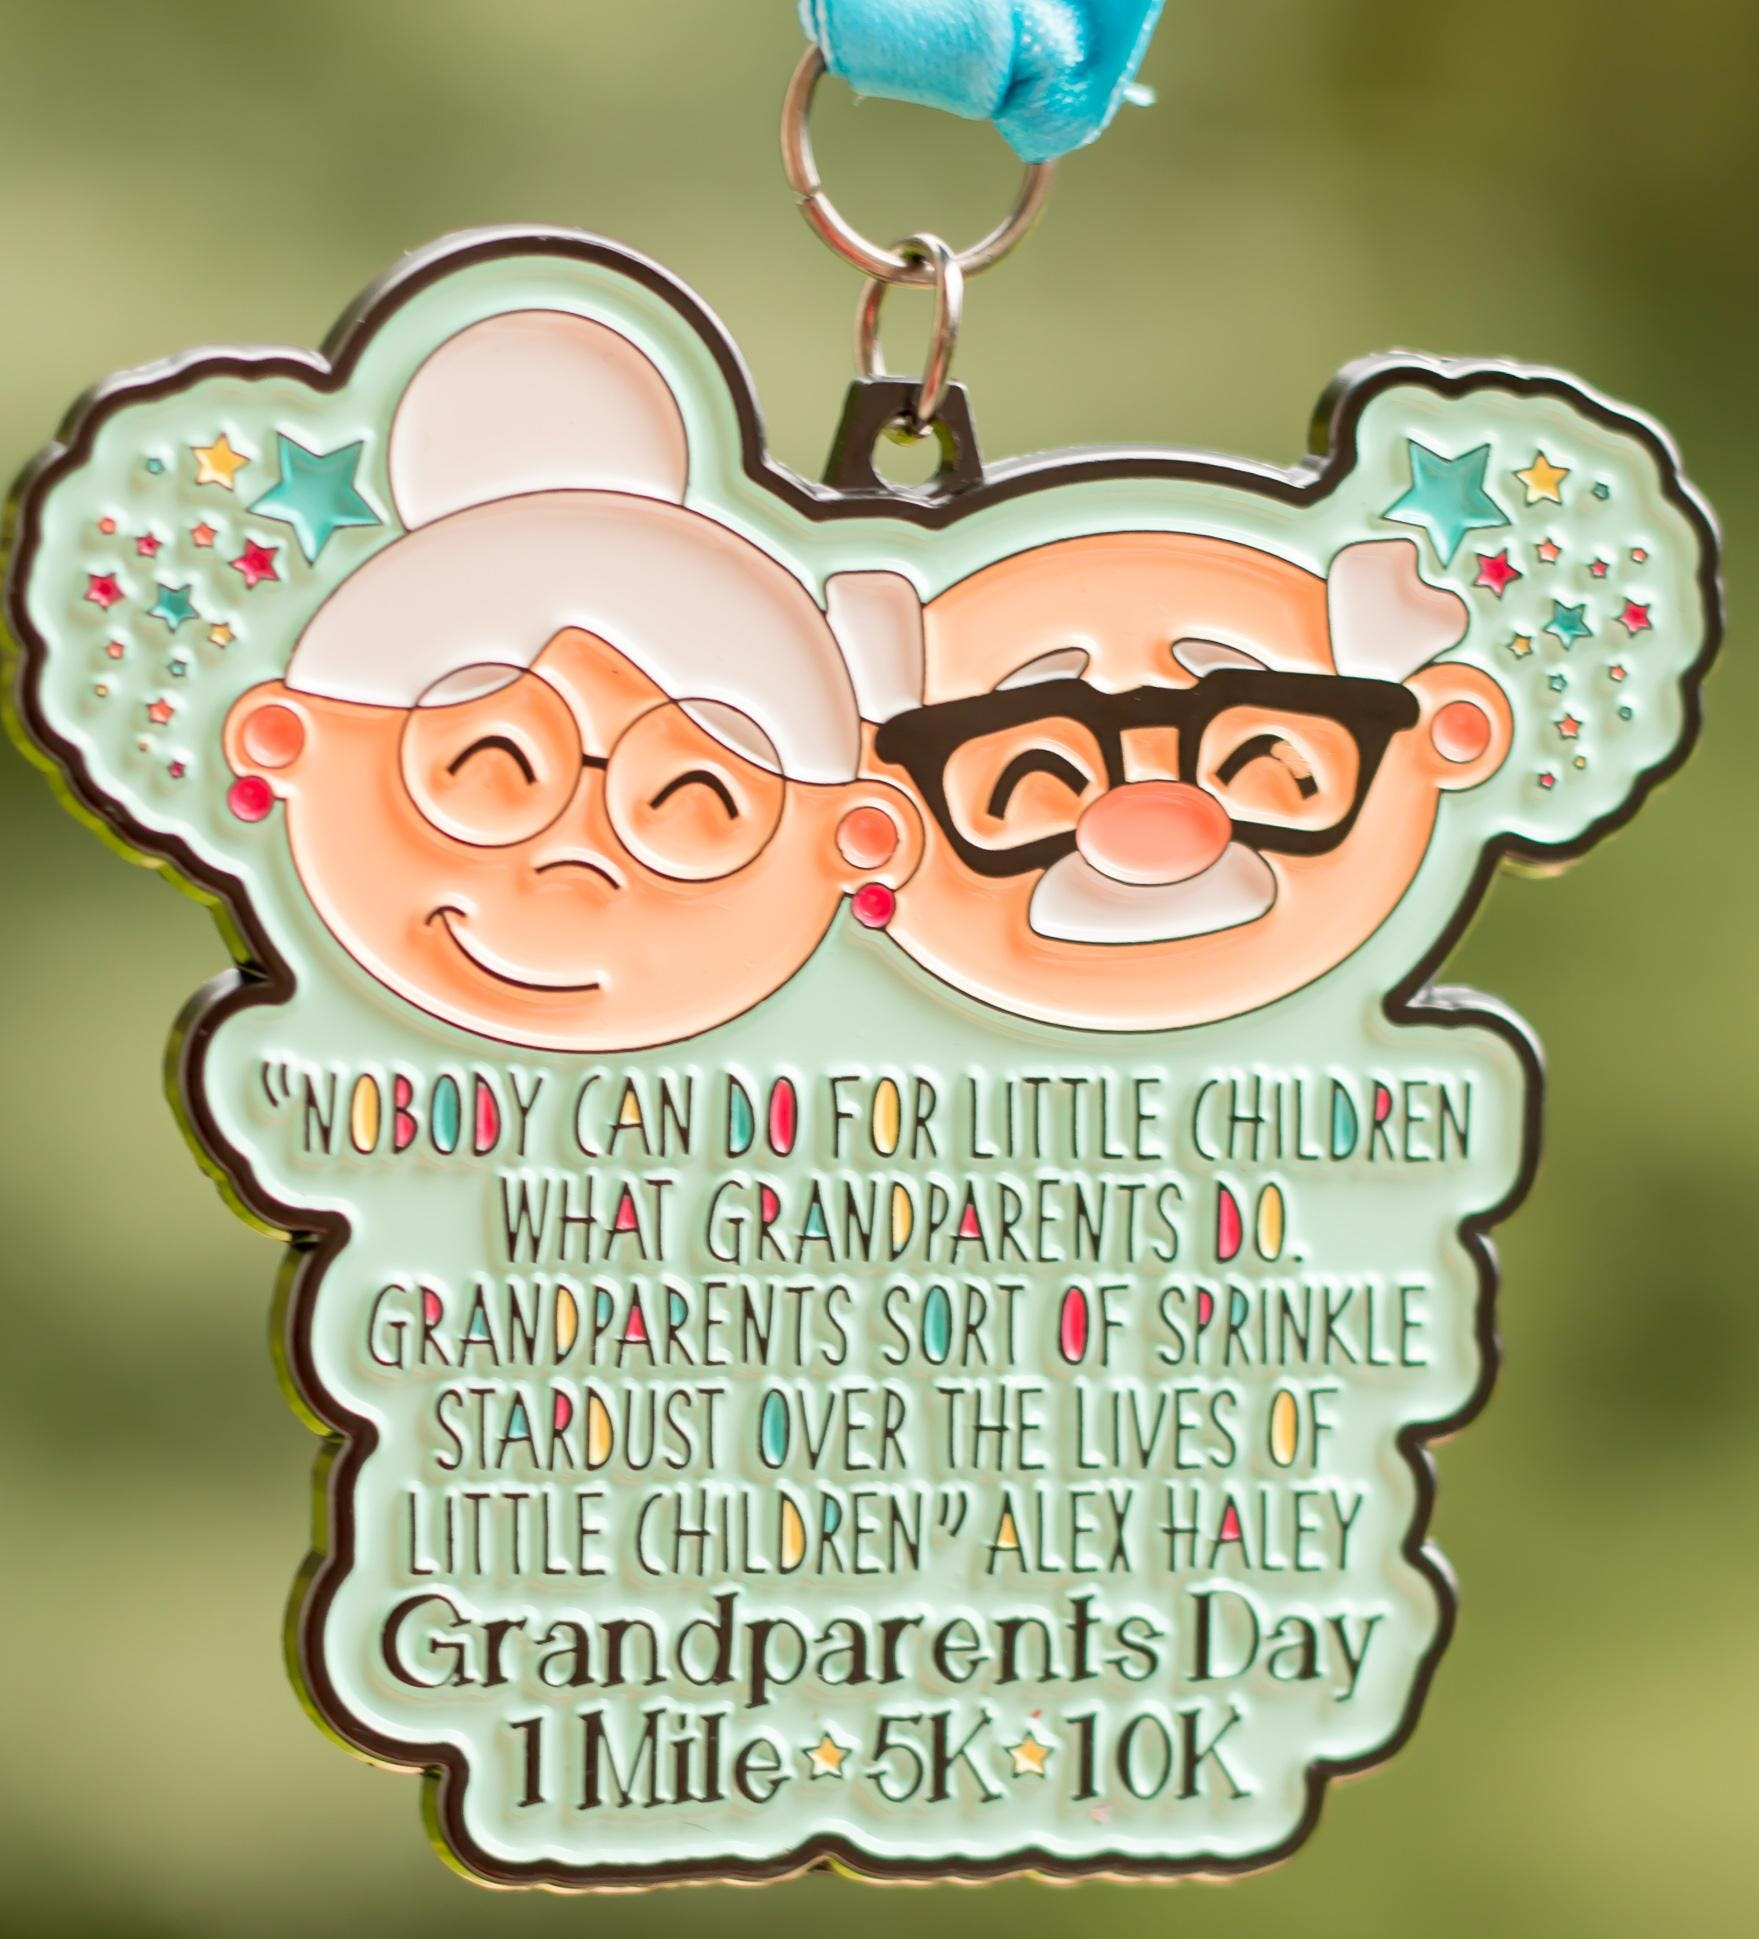 Now Only $10! The Grandparents Day 1 Mile, 5K & 10K -Chandler